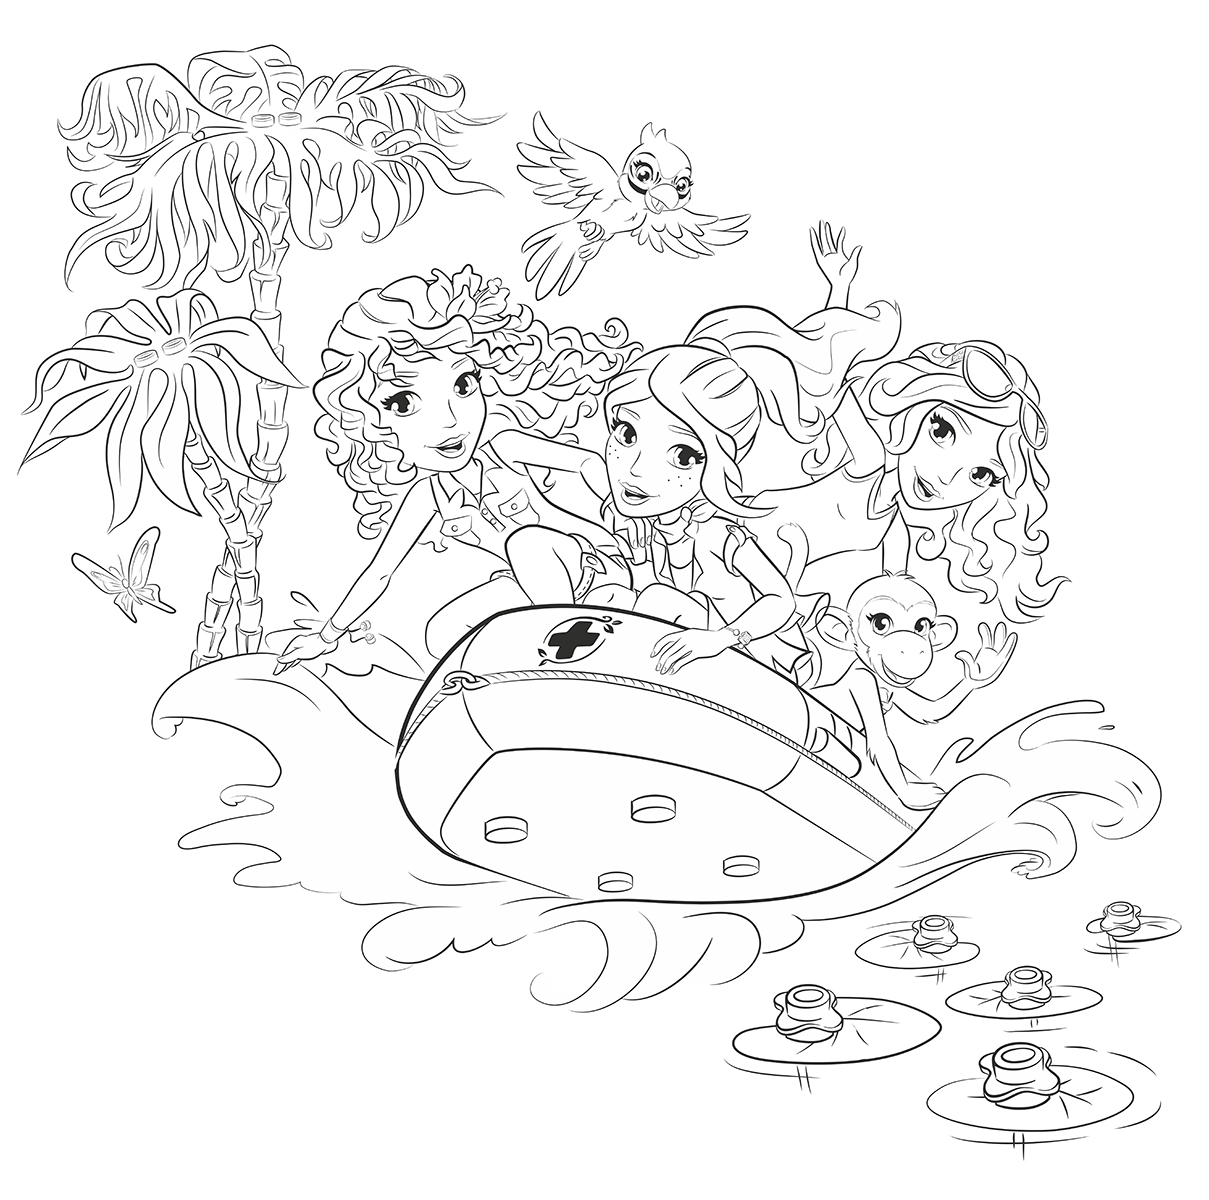 Lego Friend Coloring Pages #4